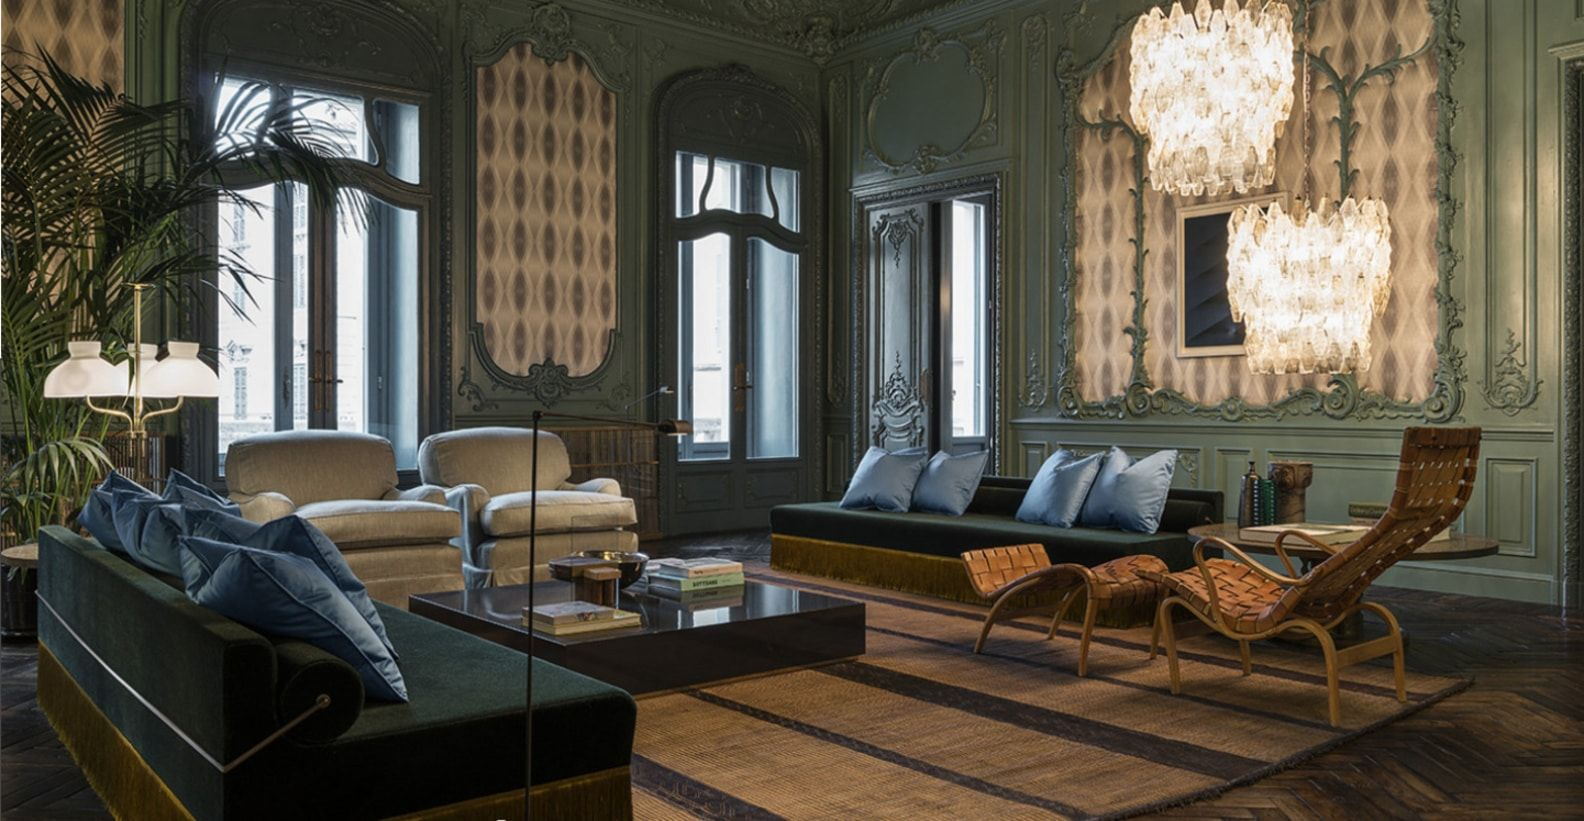 A Look Inside The World's First Fendi Hotel